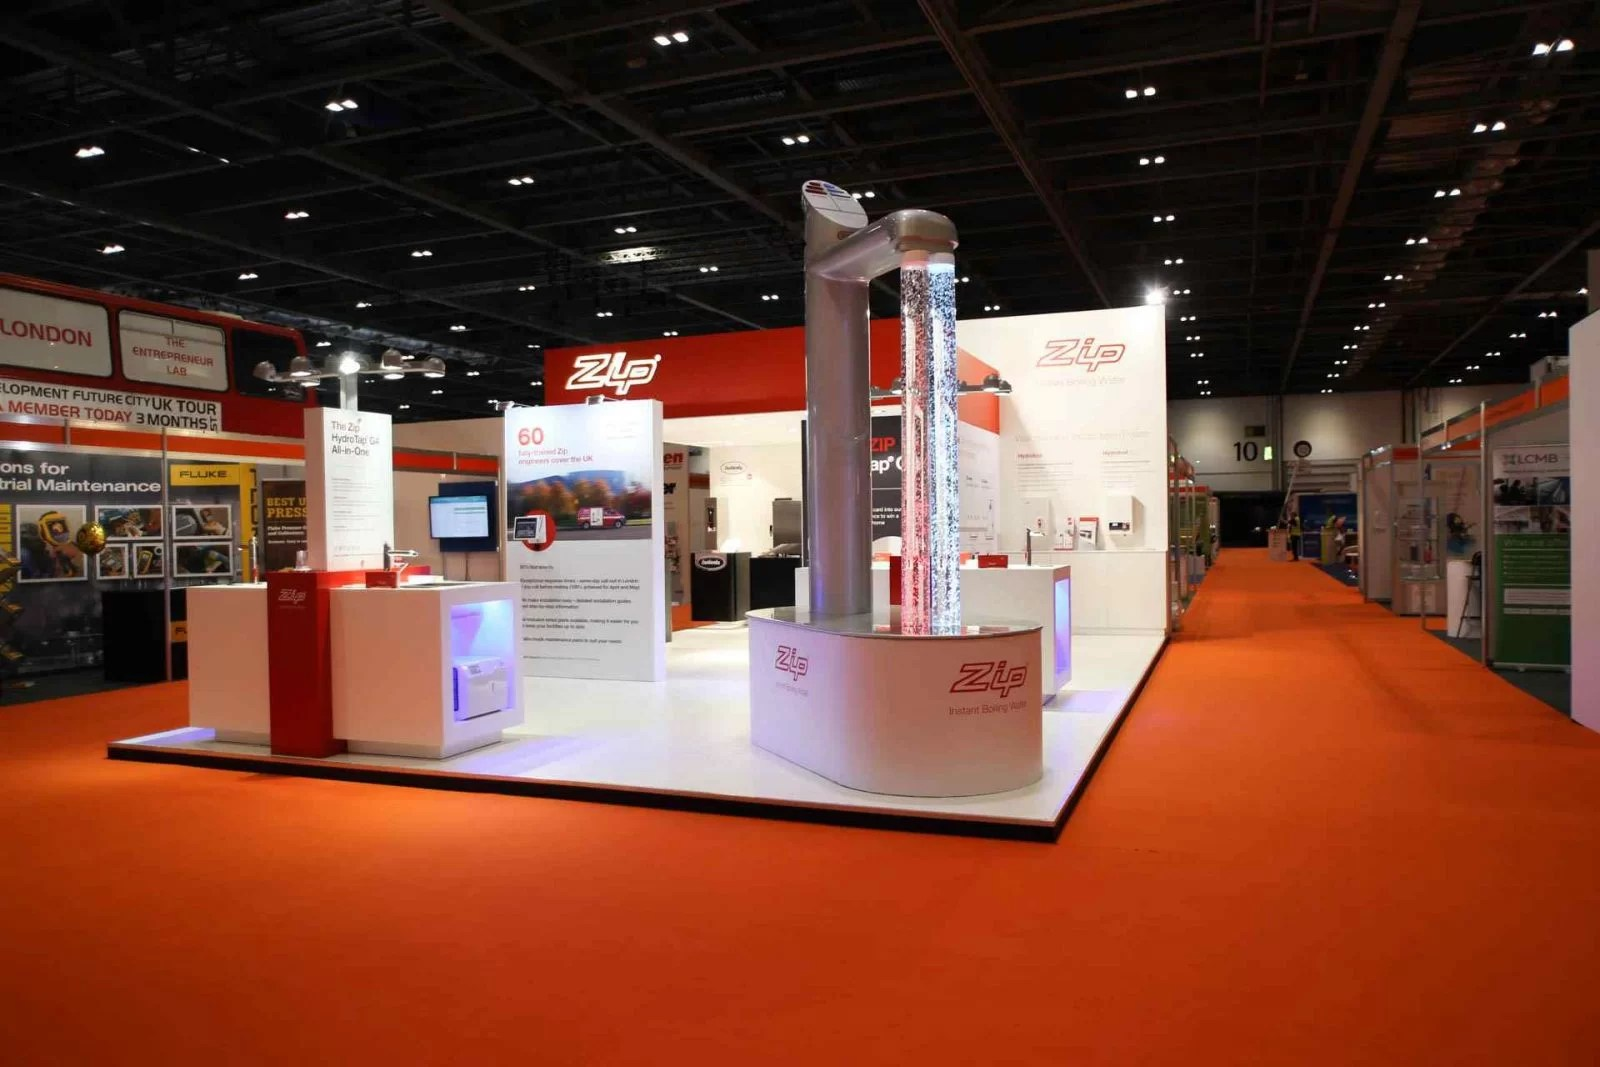 Envisage Exhibition Stand Design And Build Uk : Exhibition stands design in guangzhou u2013 things you need to know